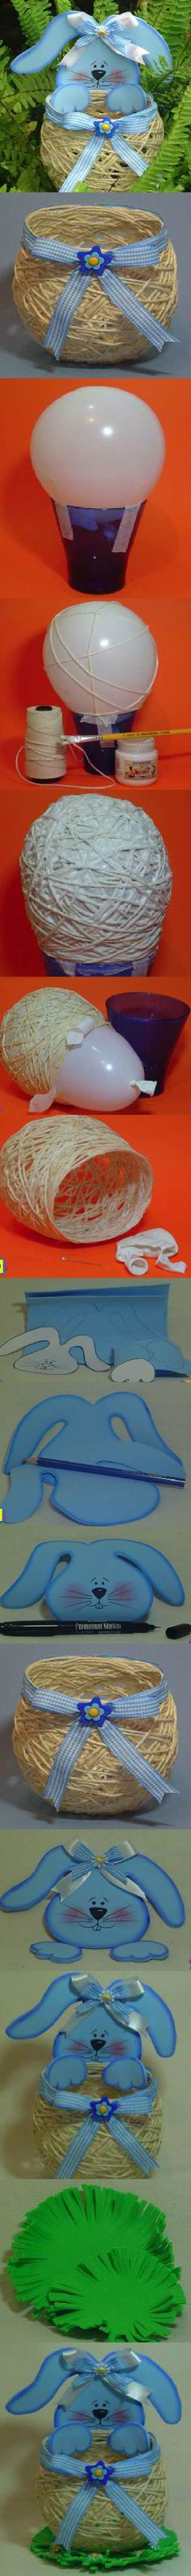 DIY Yarn String Easter Basket | iCreativeIdeas.com Like Us on Facebook ==> https://www.facebook.com/icreativeideas